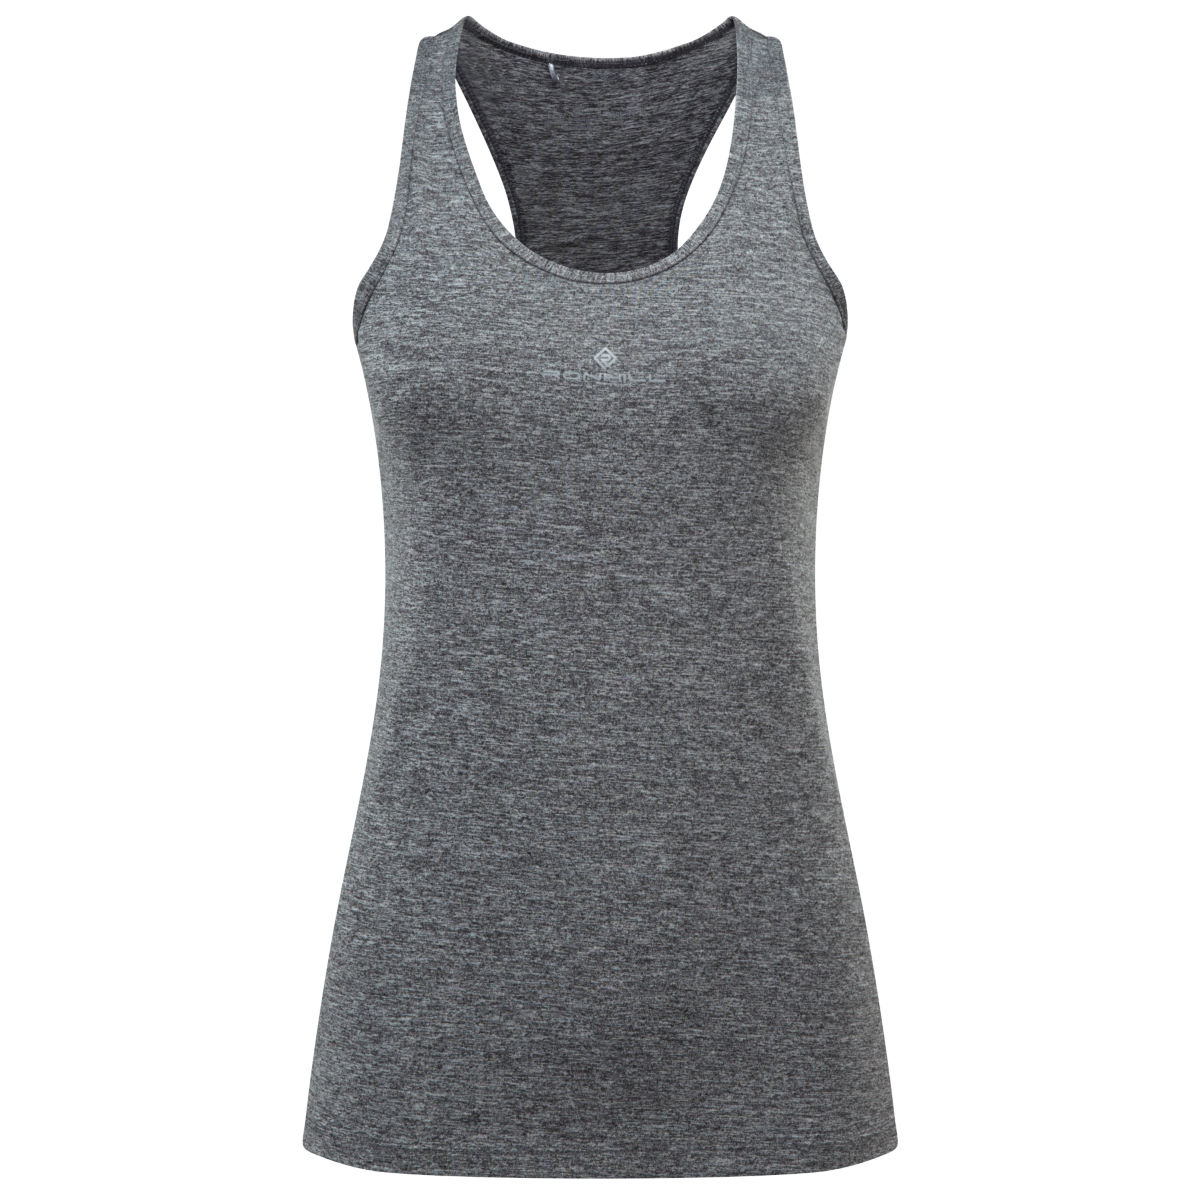 Image of Débardeur Femme Ronhill Momentum Body - 14 Grey Marl